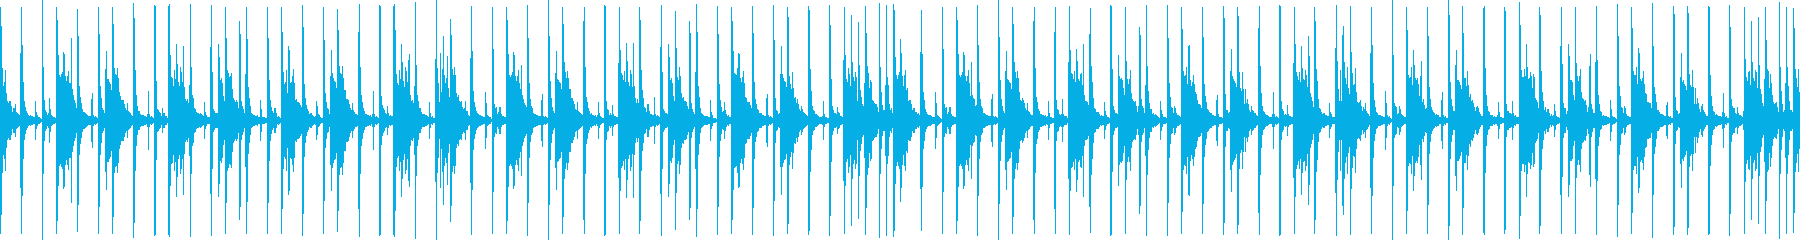 Indian percussion's reproduced waveform